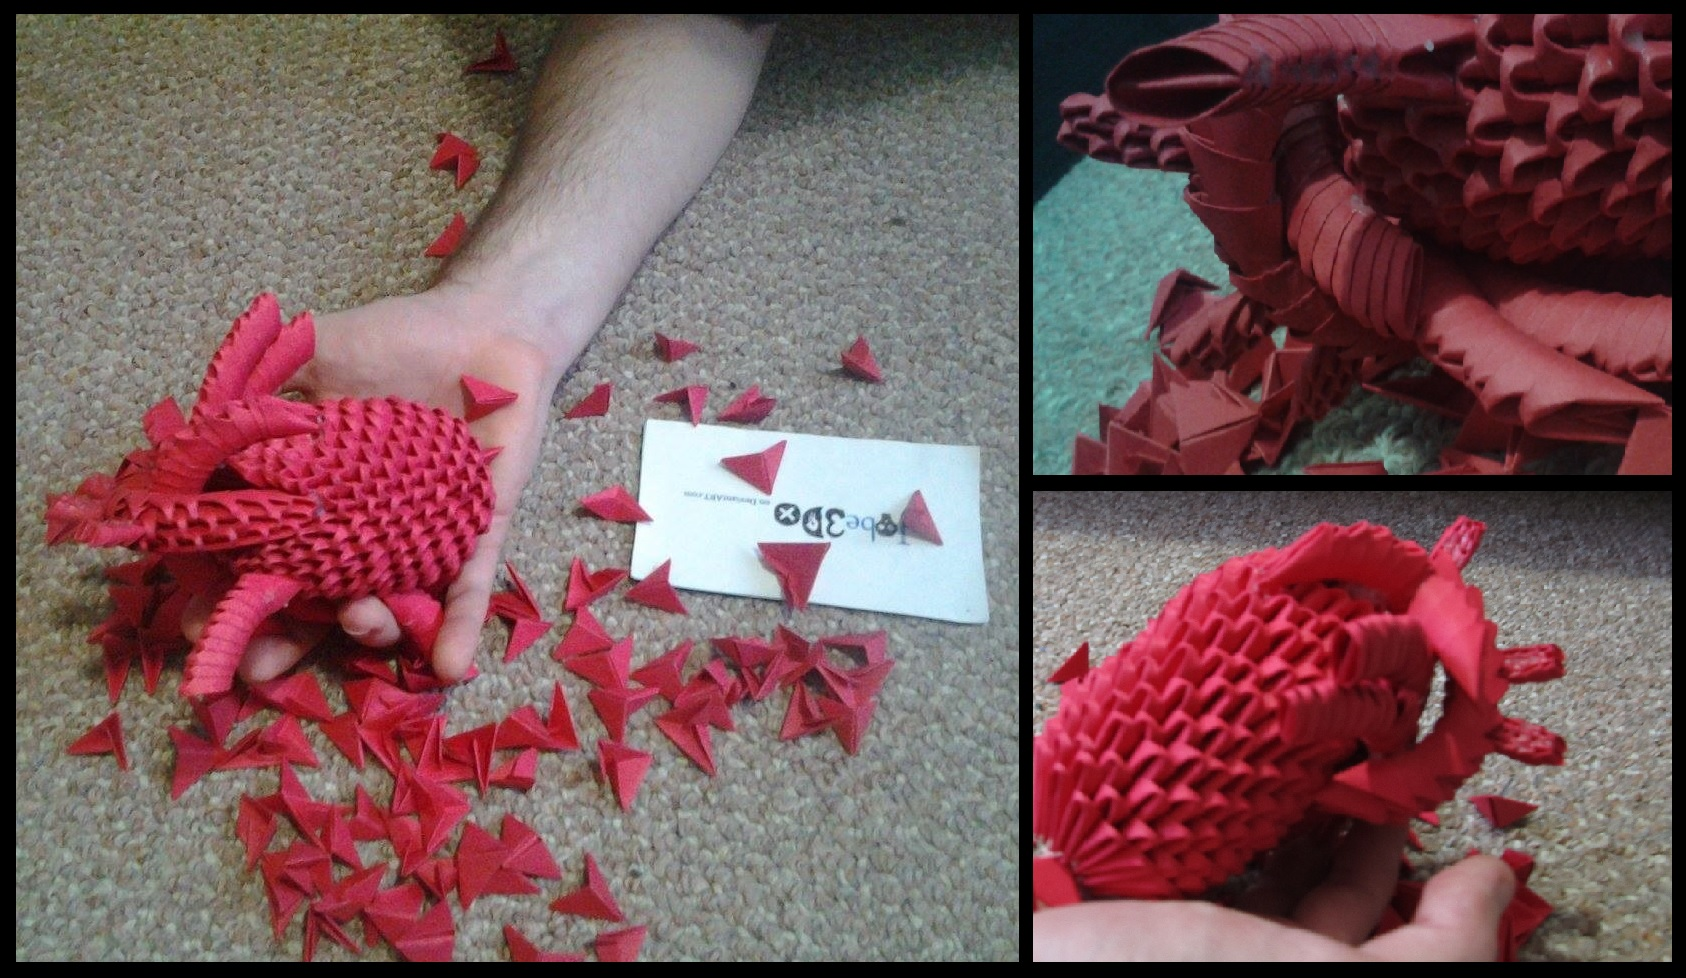 d origami human heart by jobedo on 3d origami human heart by jobe3do